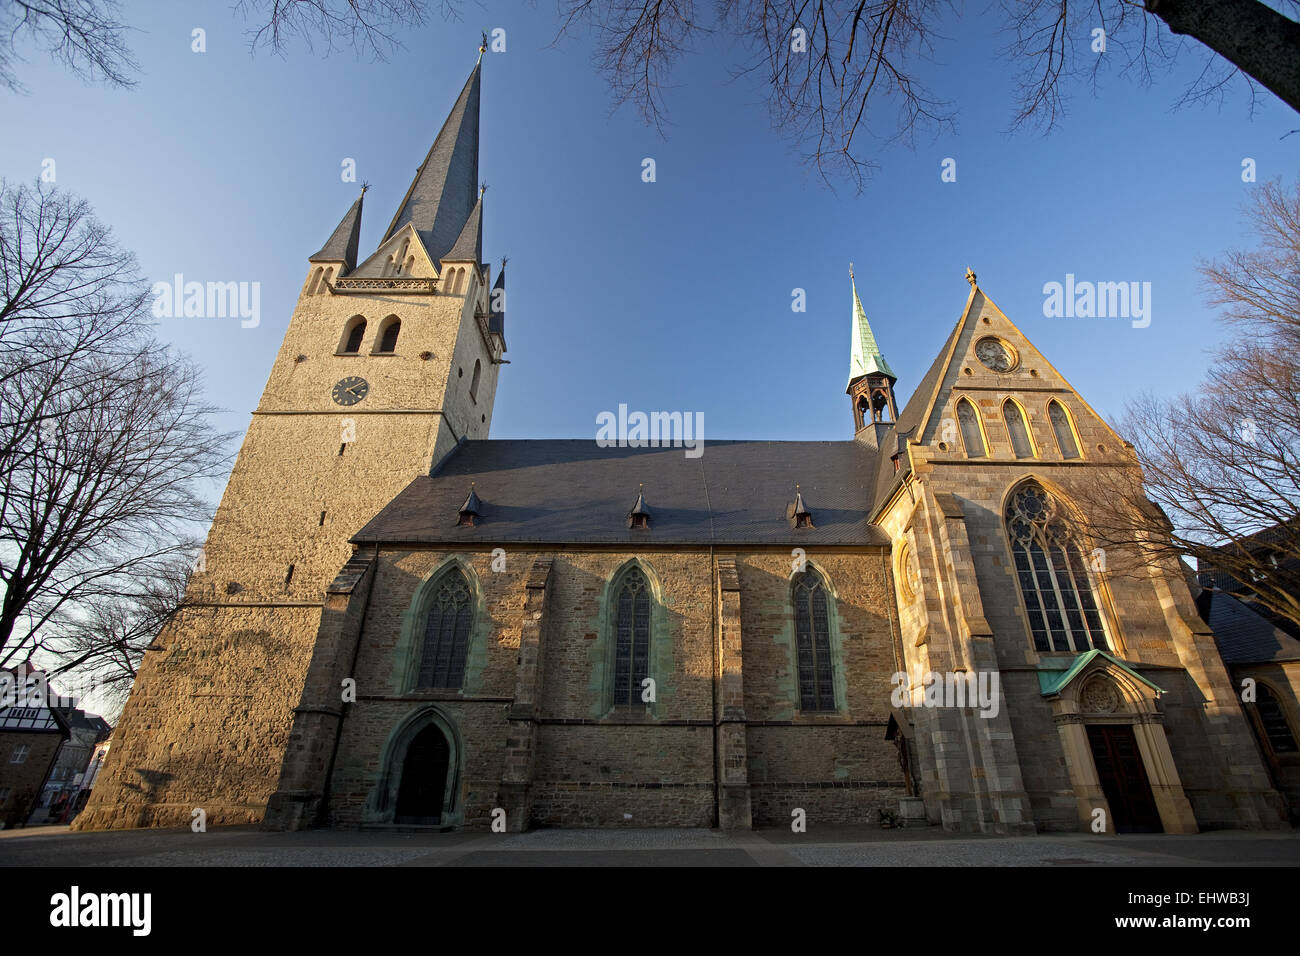 The Saint Vincent Church in Menden, Germany. - Stock Image